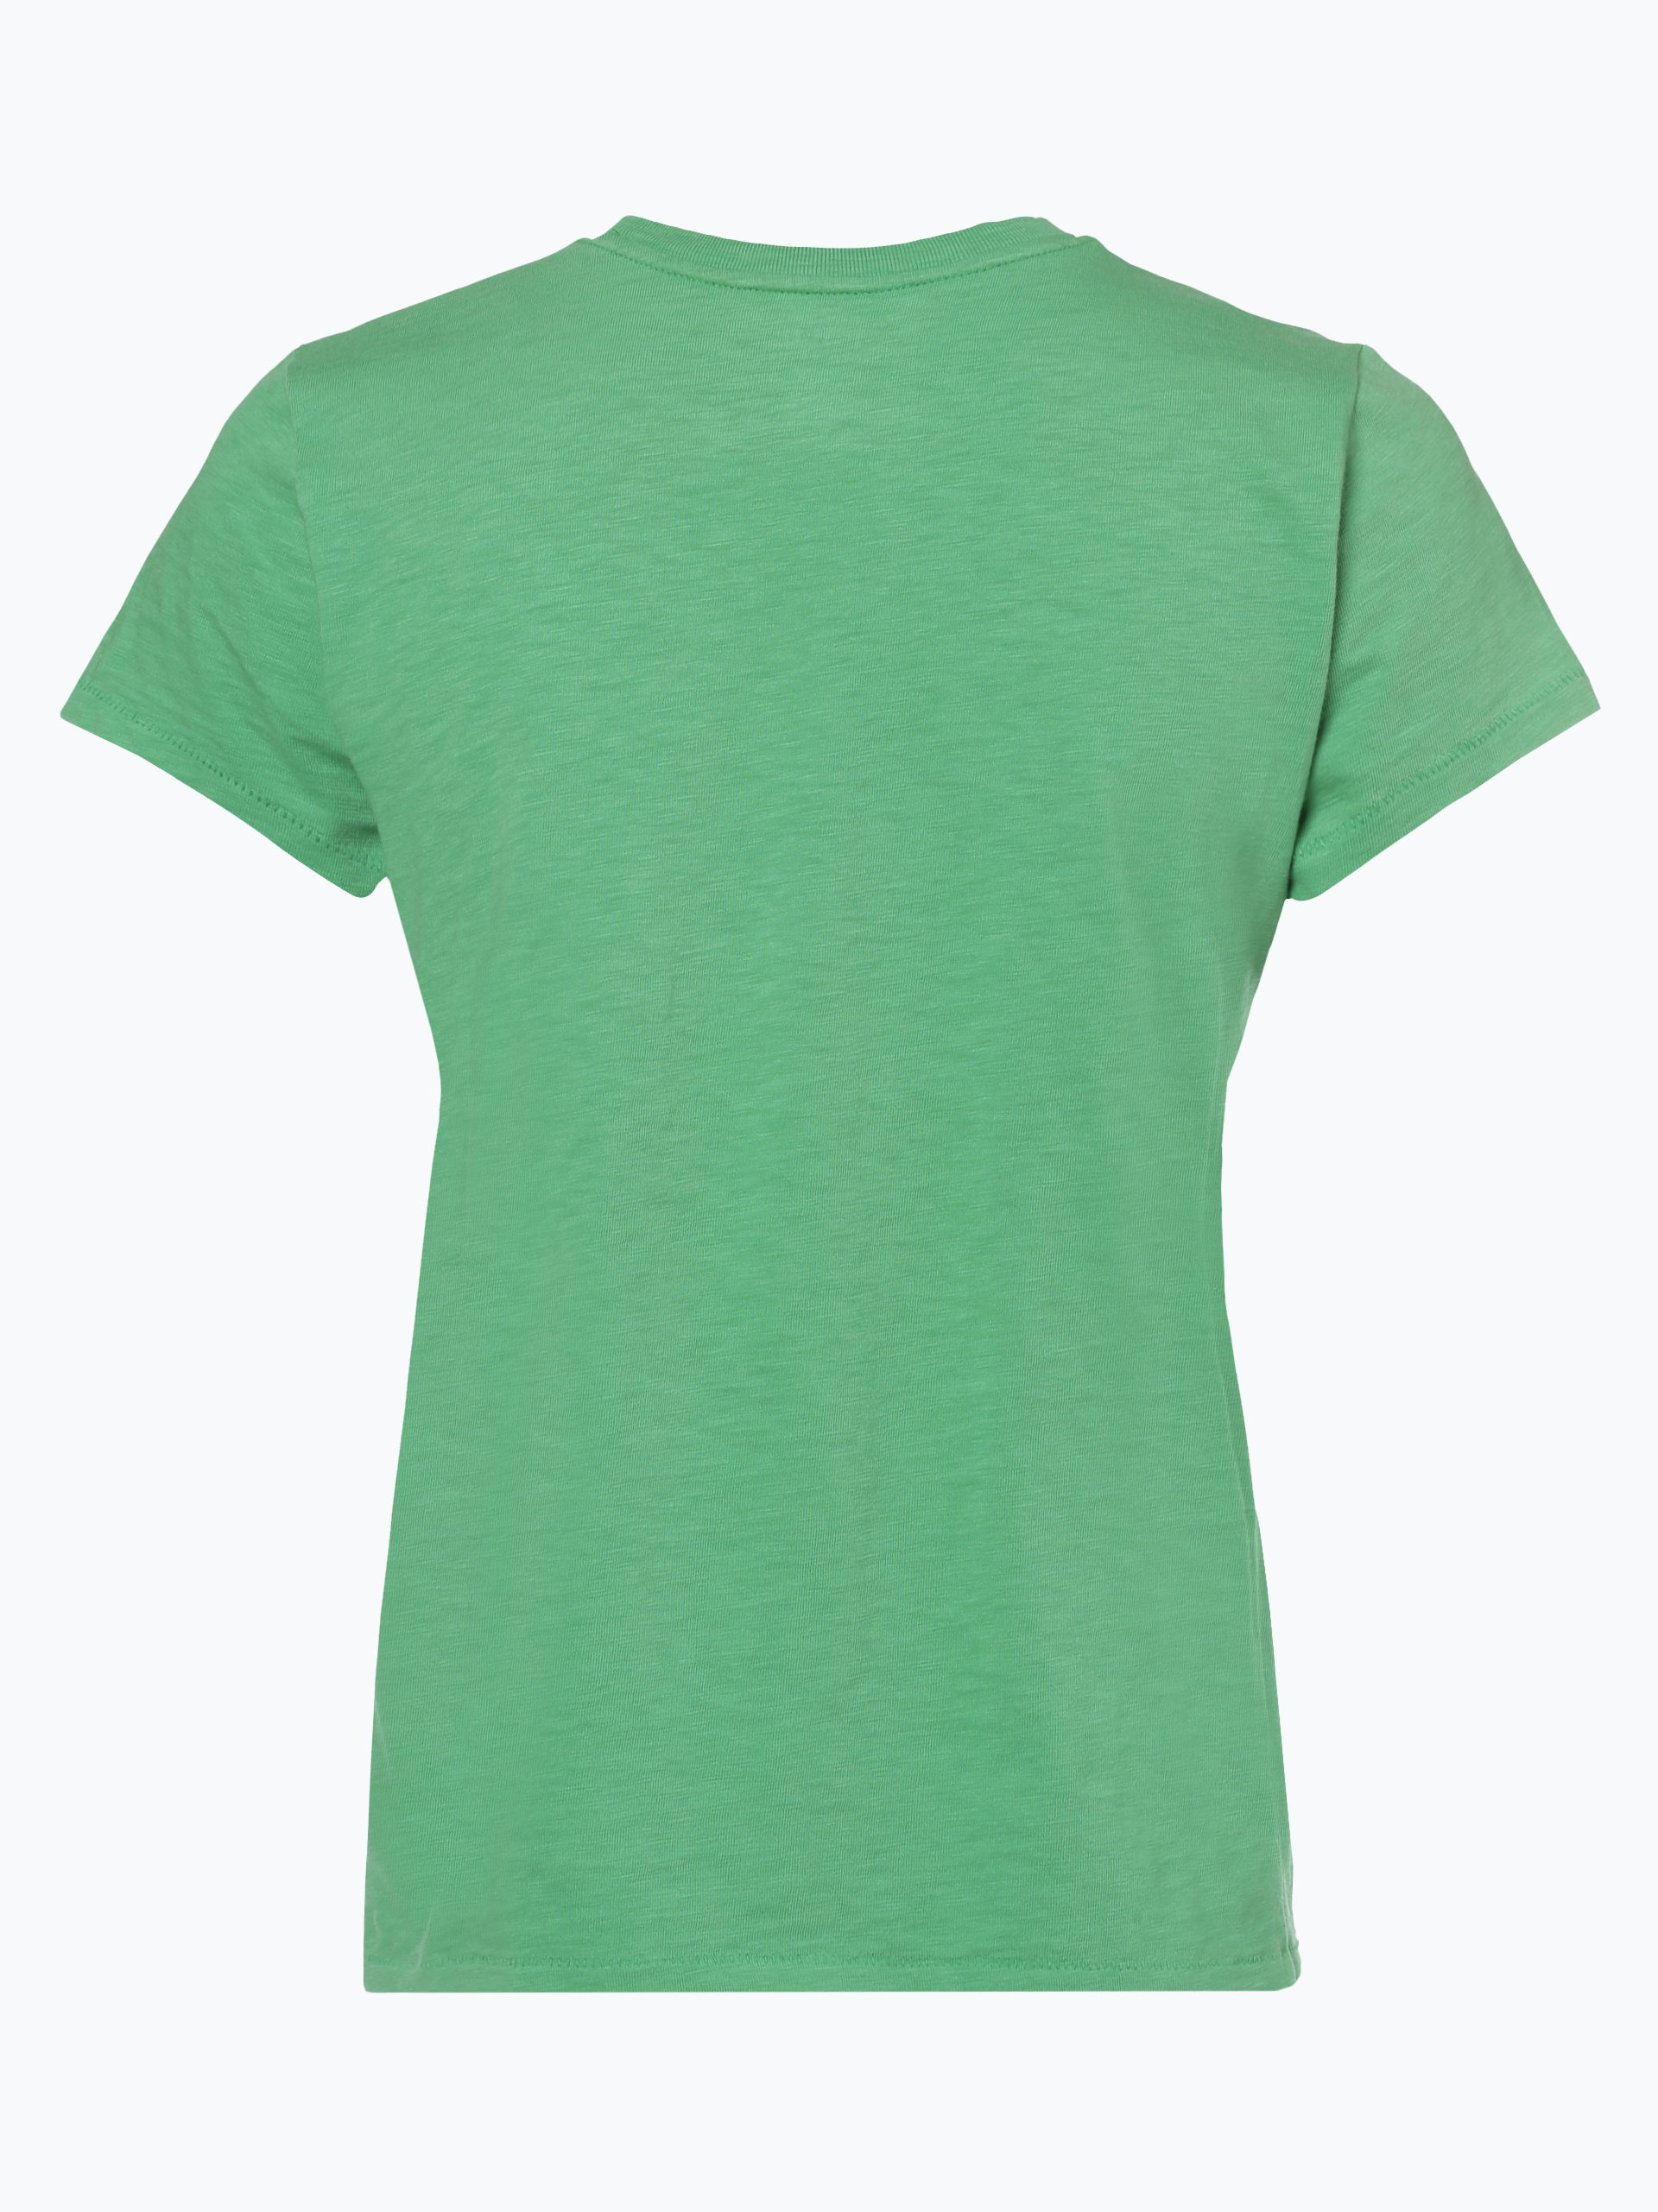 Polo Ralph Lauren Damen T-Shirt